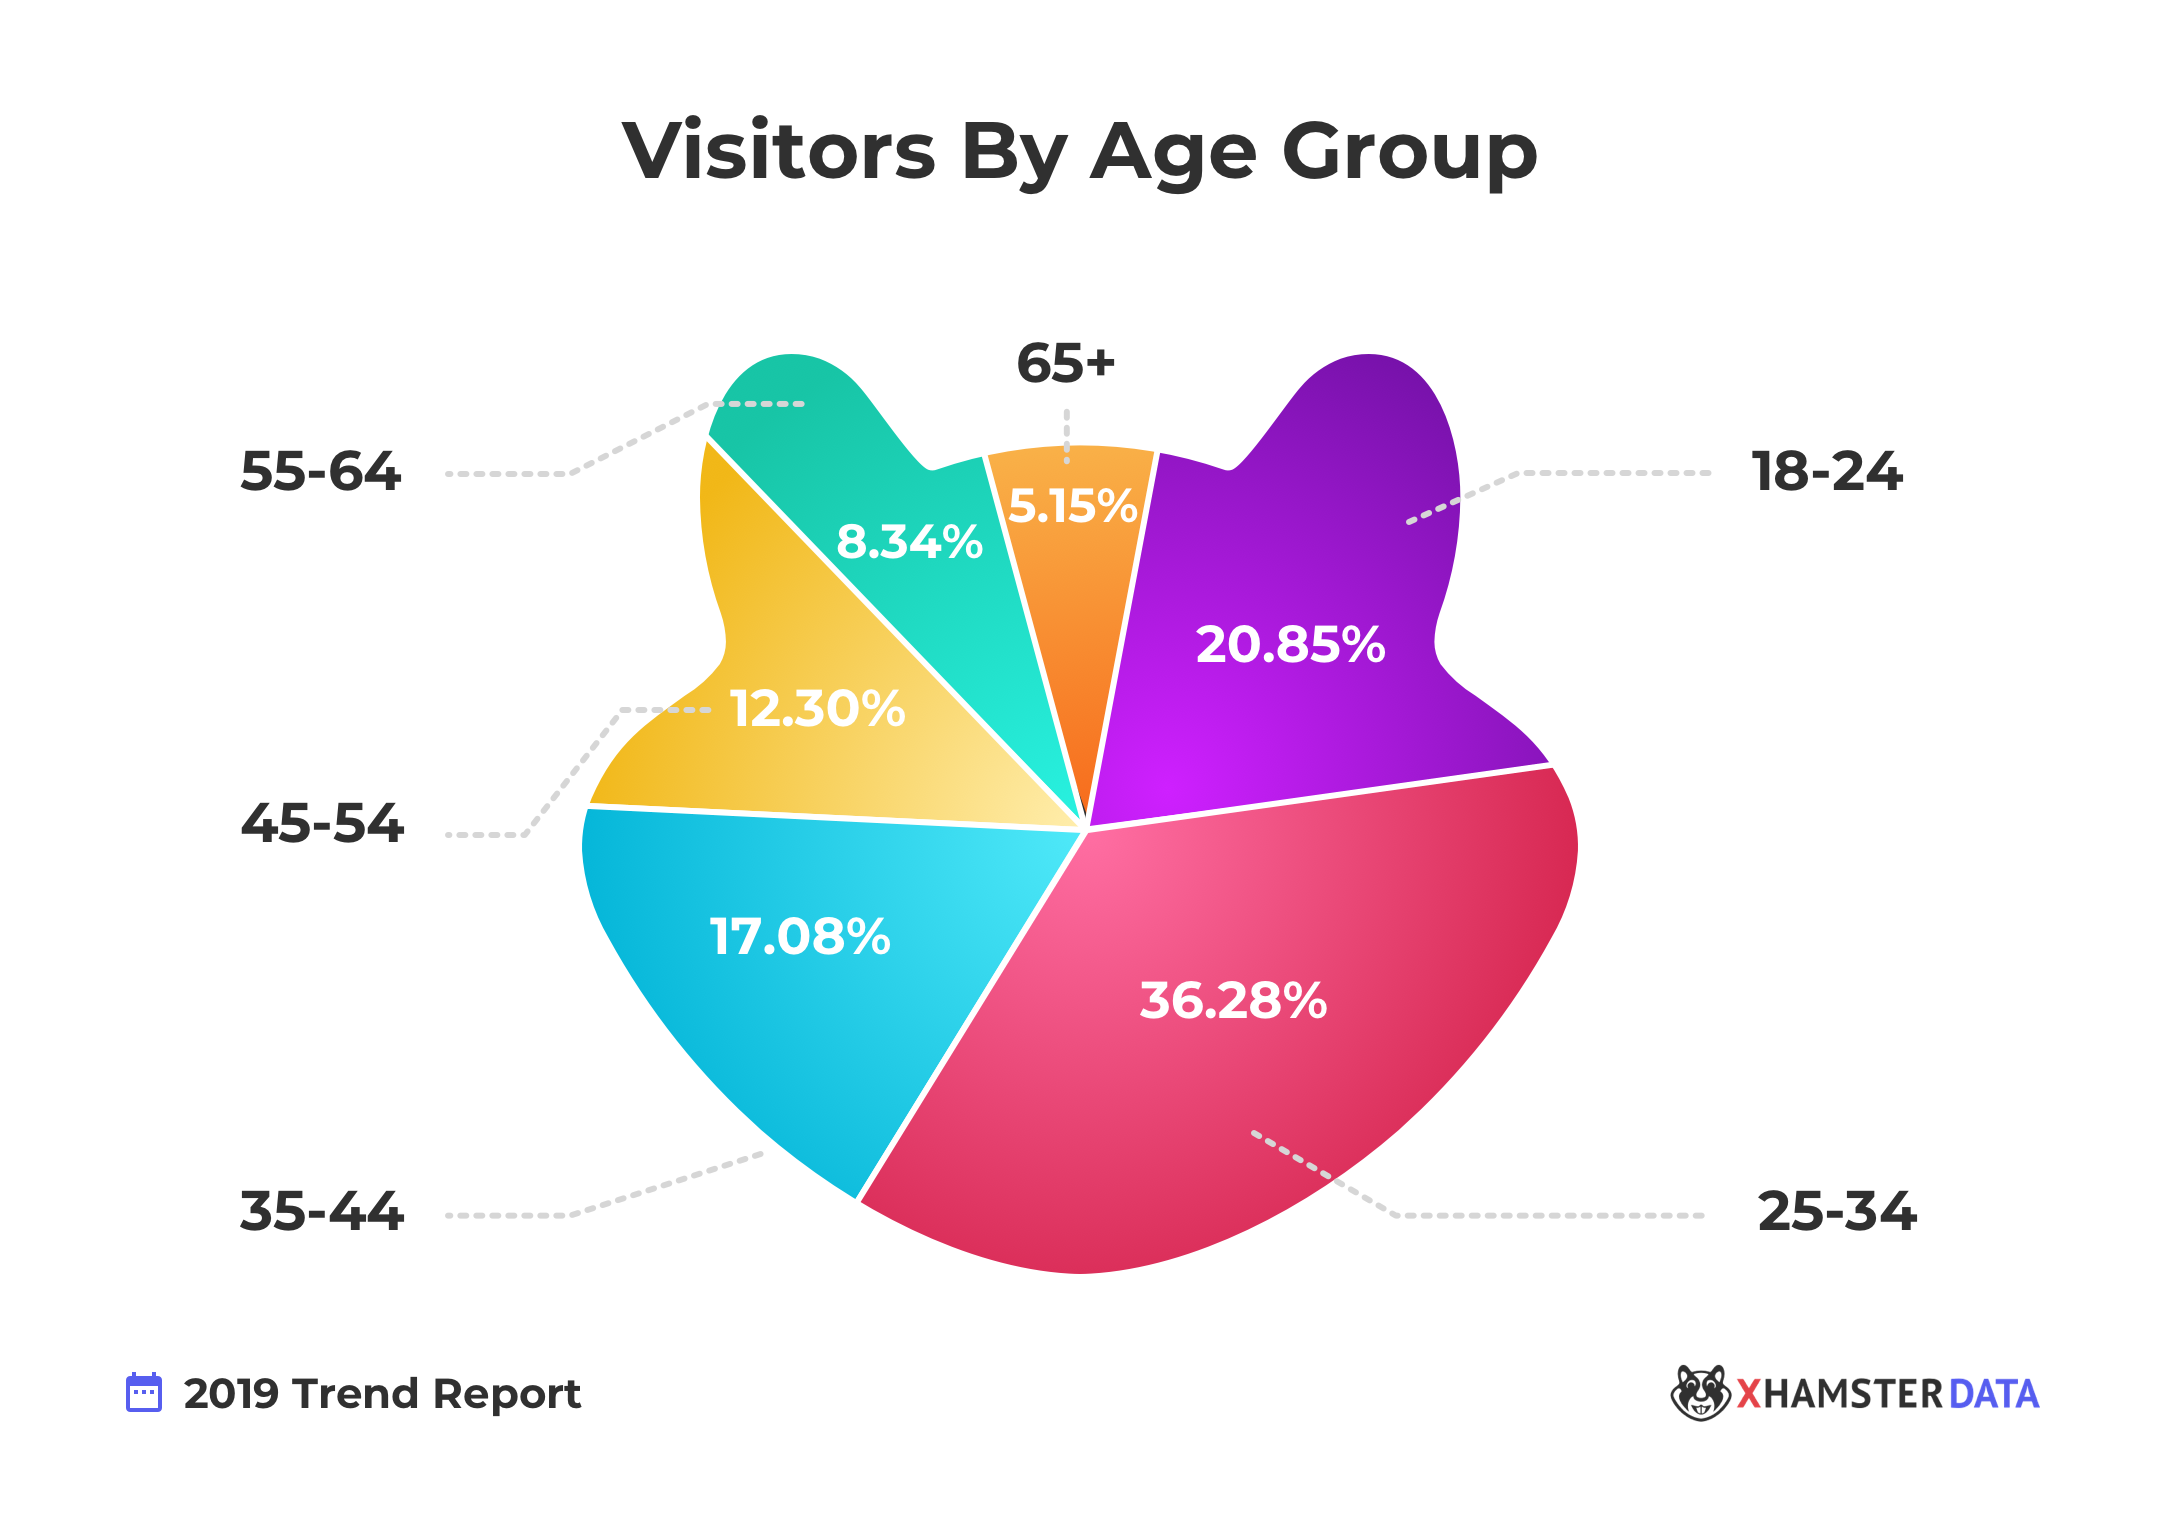 The Official xHamster 2019 Trend Report 14